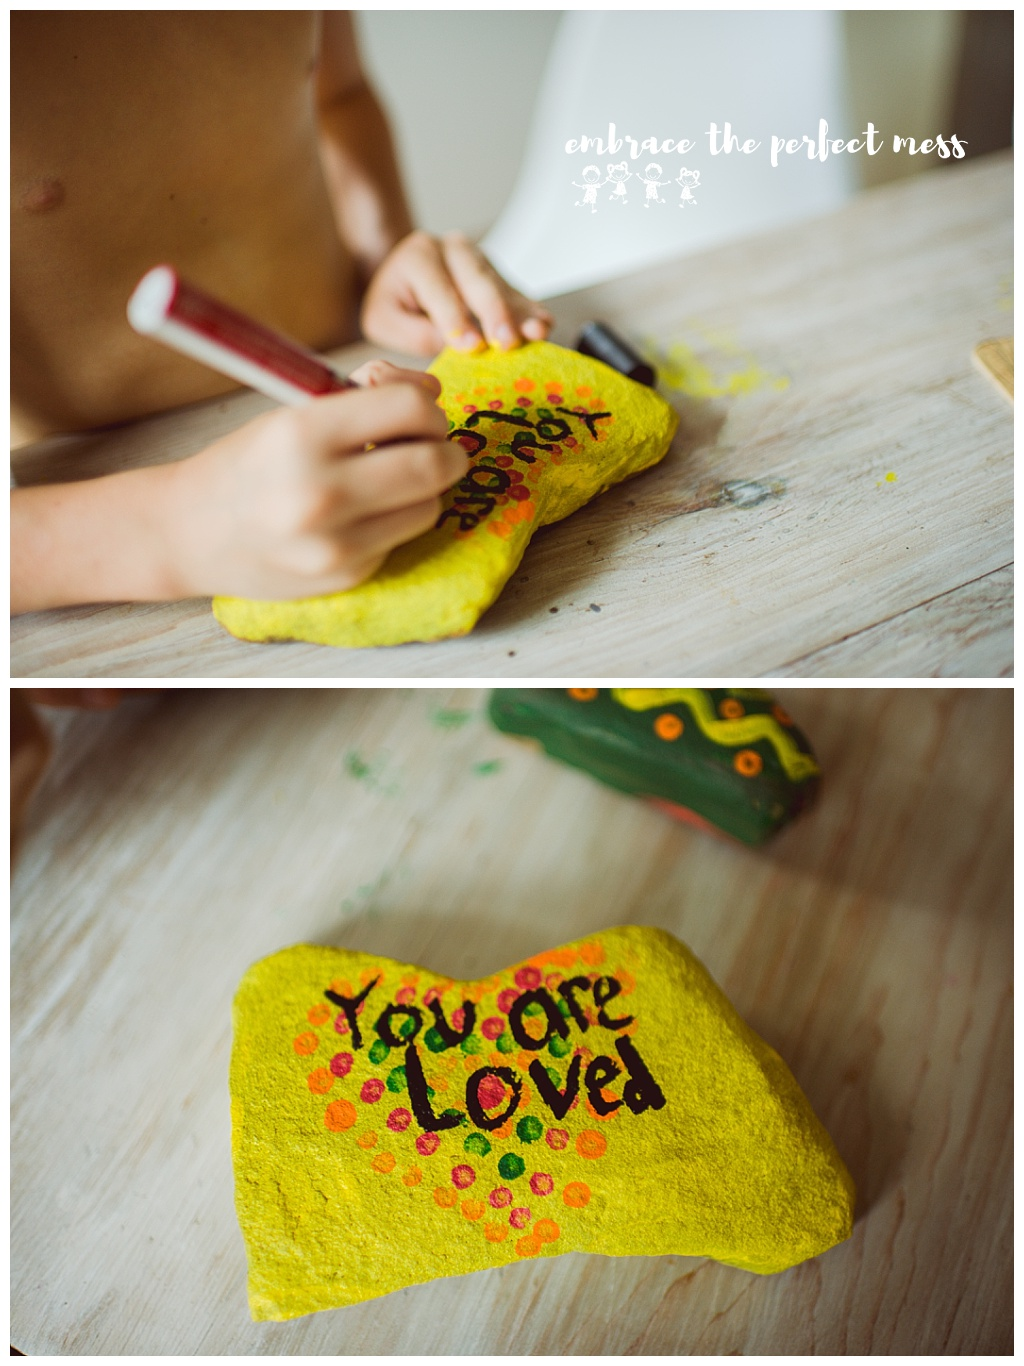 This is a great tutorial on how to make kindness rocks. I love this project!